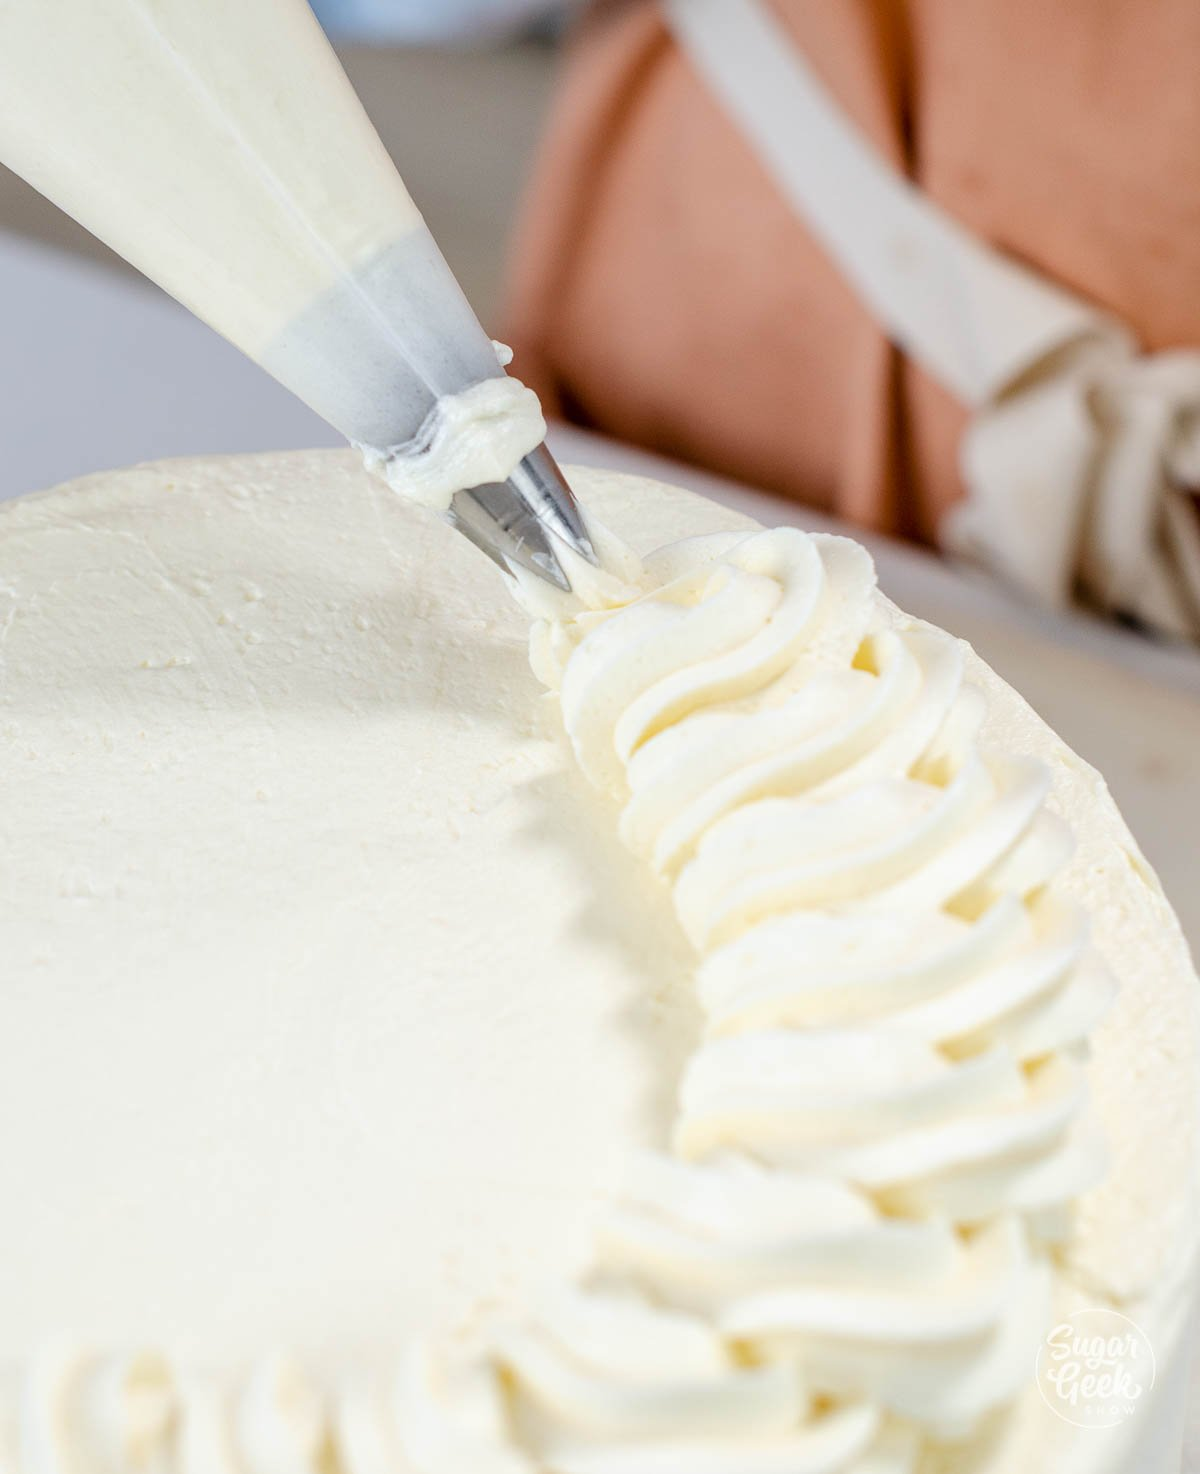 piping a rope border on top of the cake